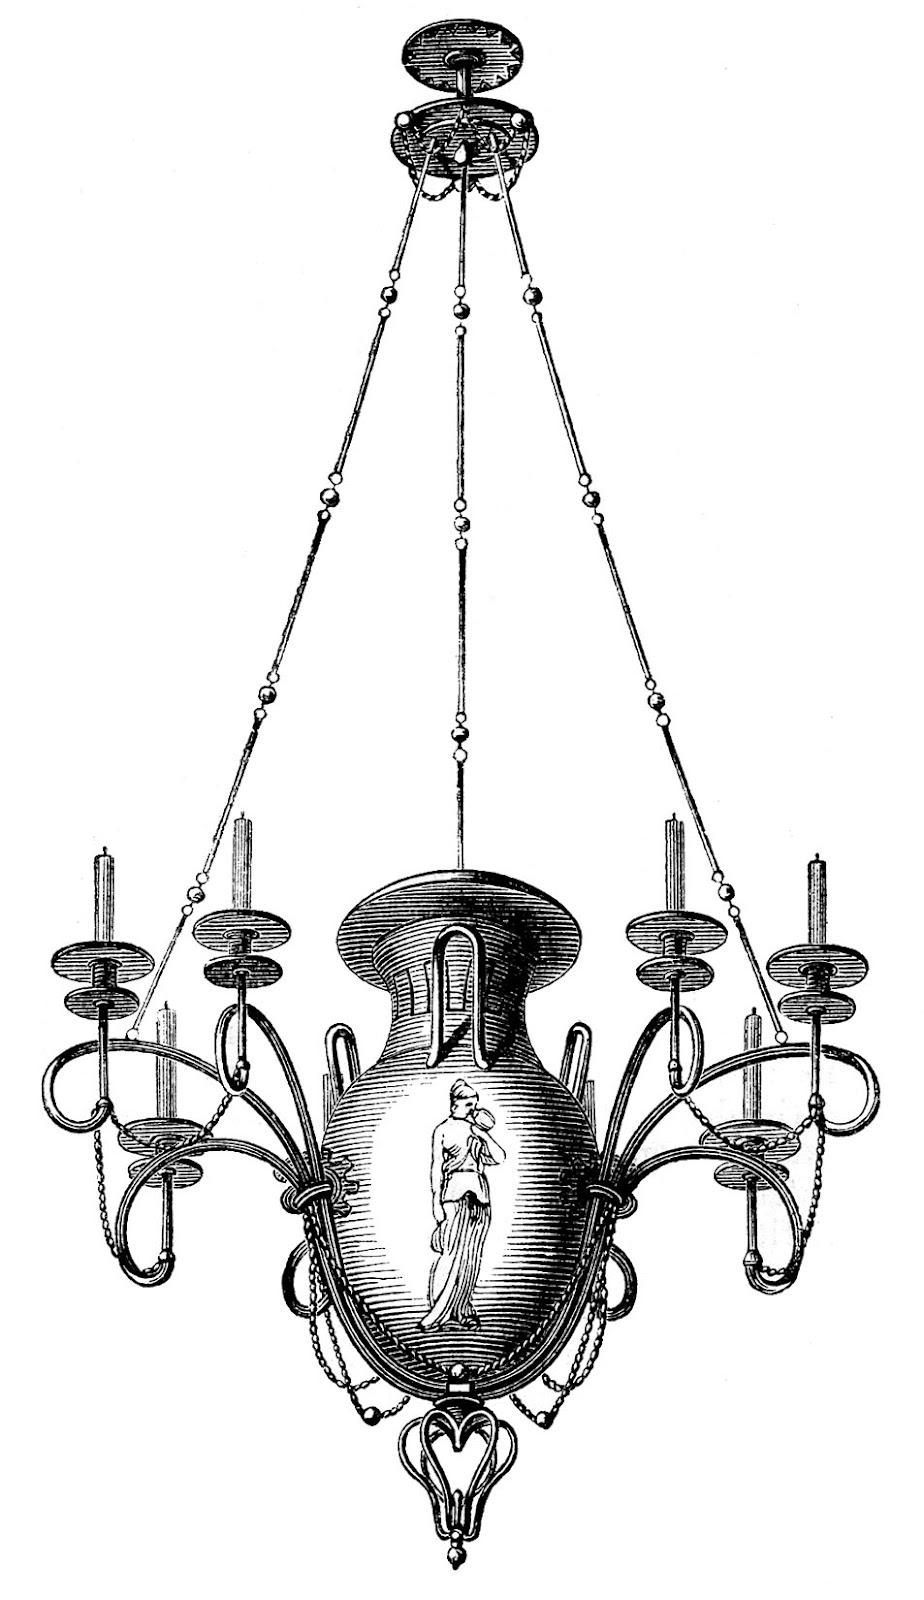 Antique images 3 chandeliers 1 spooky the graphics fairy antique images 3 chandeliers 1 spooky aloadofball Images